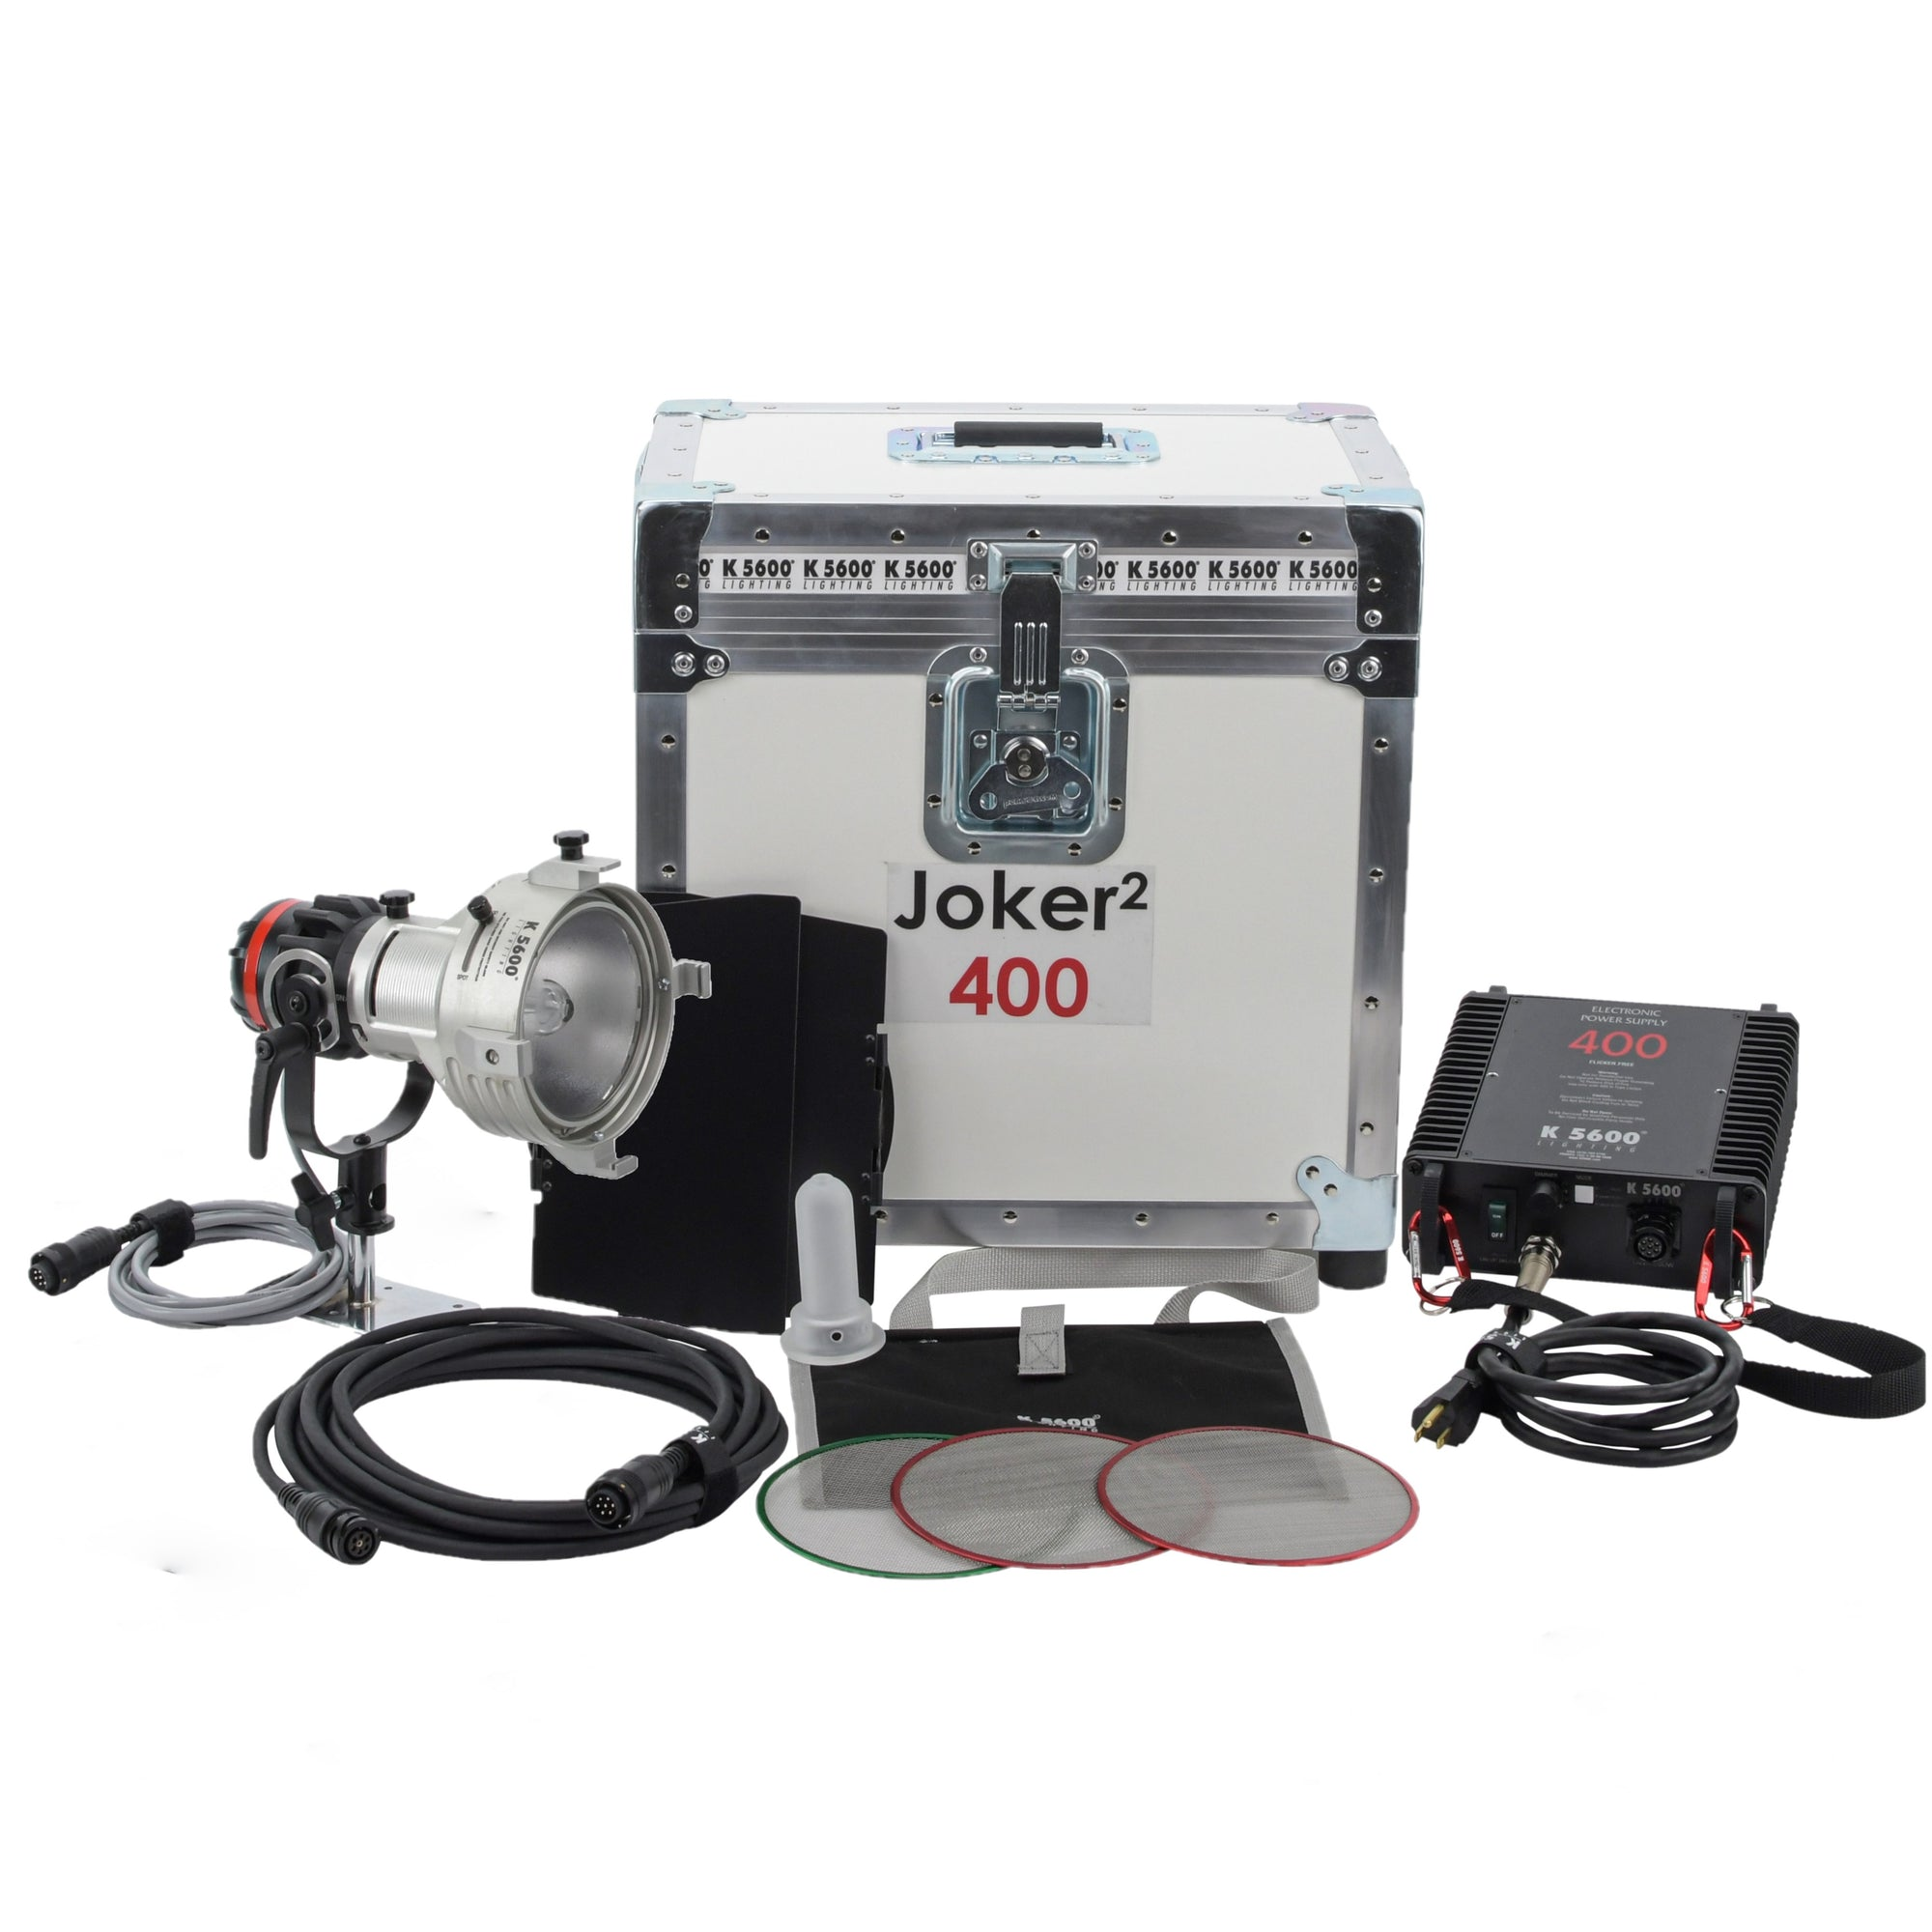 Joker² 400W News Kit